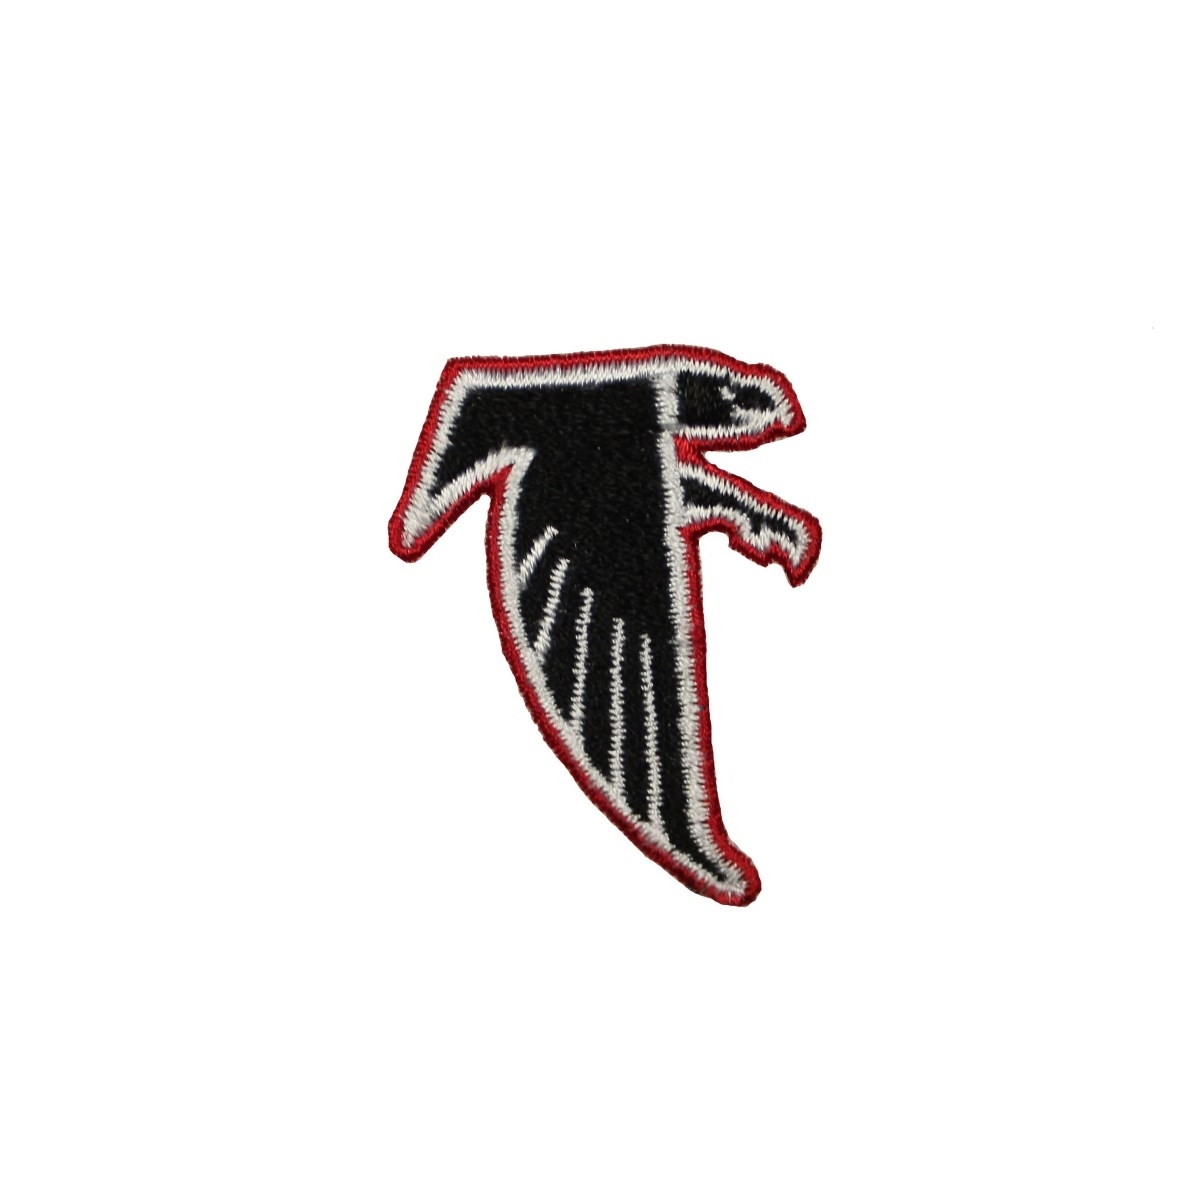 Lot of 4 Atlanta Falcons Old Team Logo Patch Crest Embroidered Iron On  Applique.